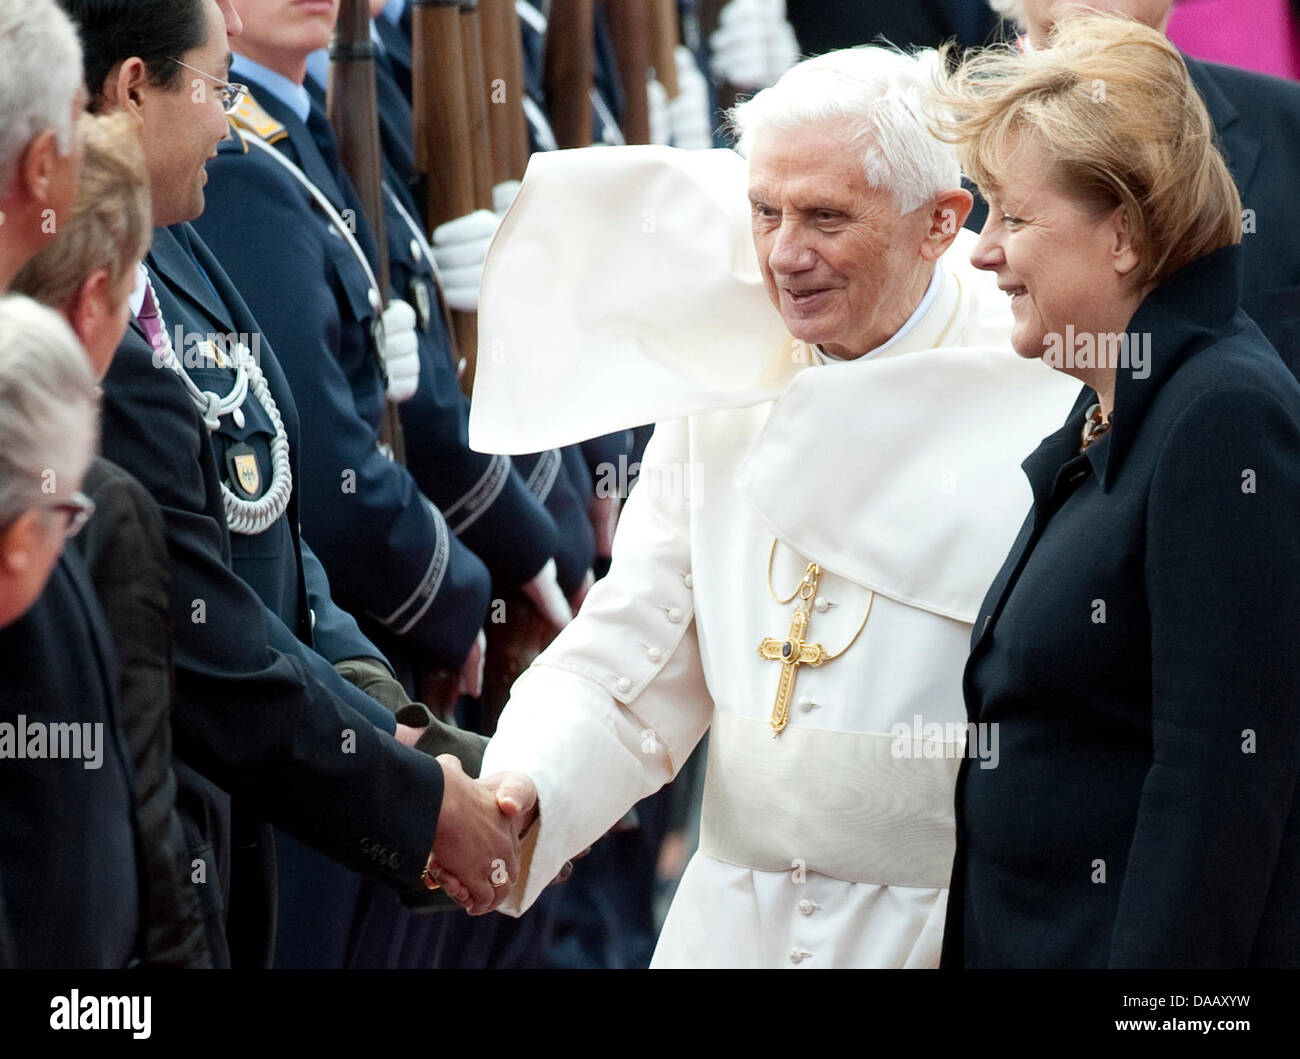 The Pope is welcomed by German Chancellor Angela Merkel (r). The head of the Roman Catholic Church is visiting Germany - Stock Image